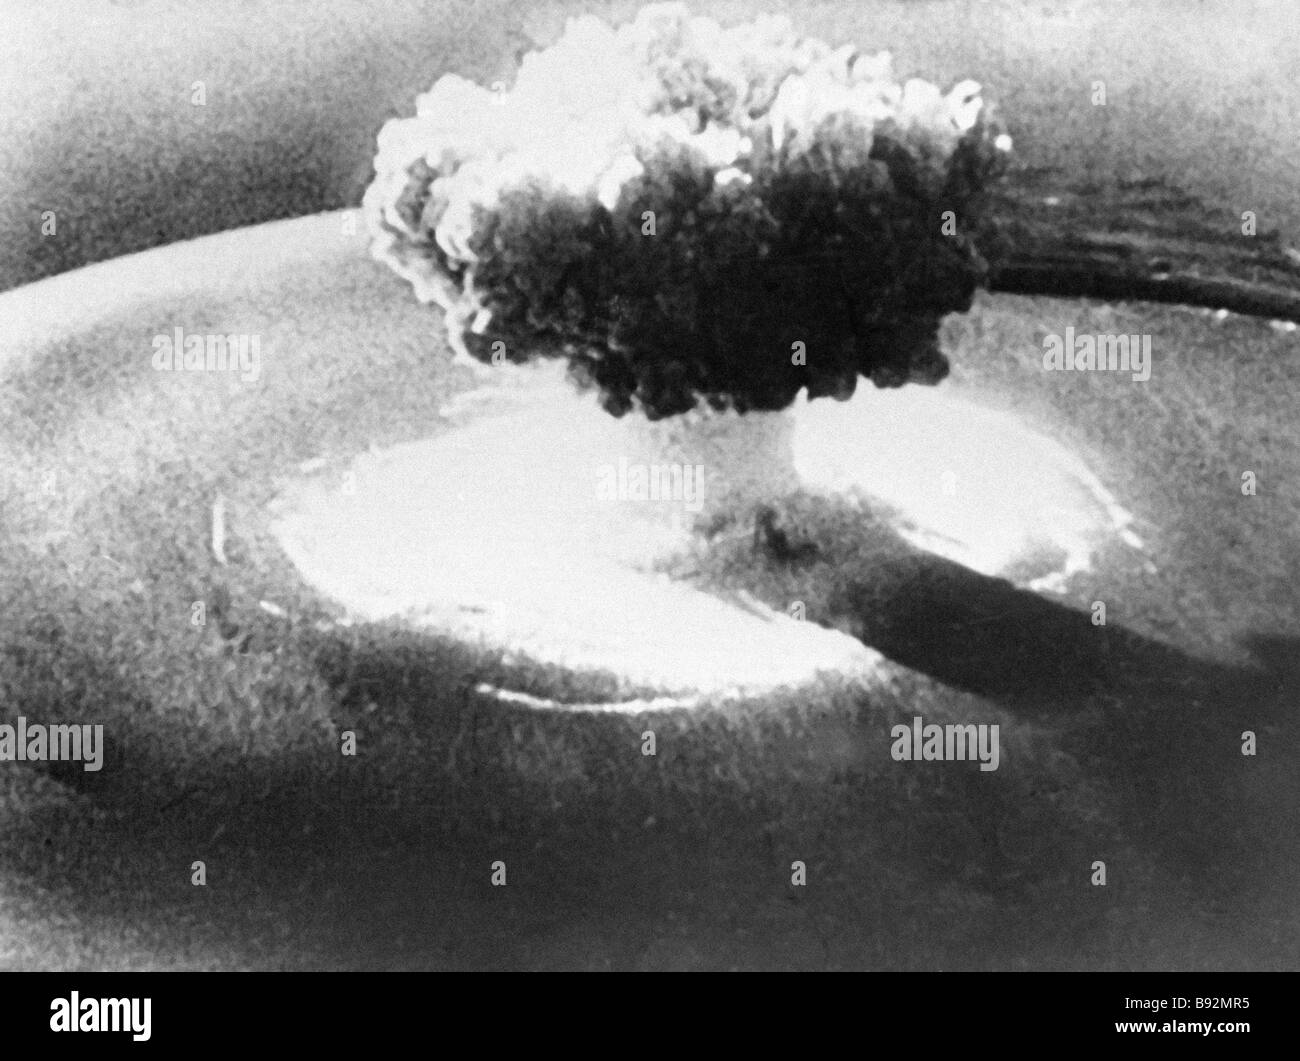 A nuclear explosion - Stock Image